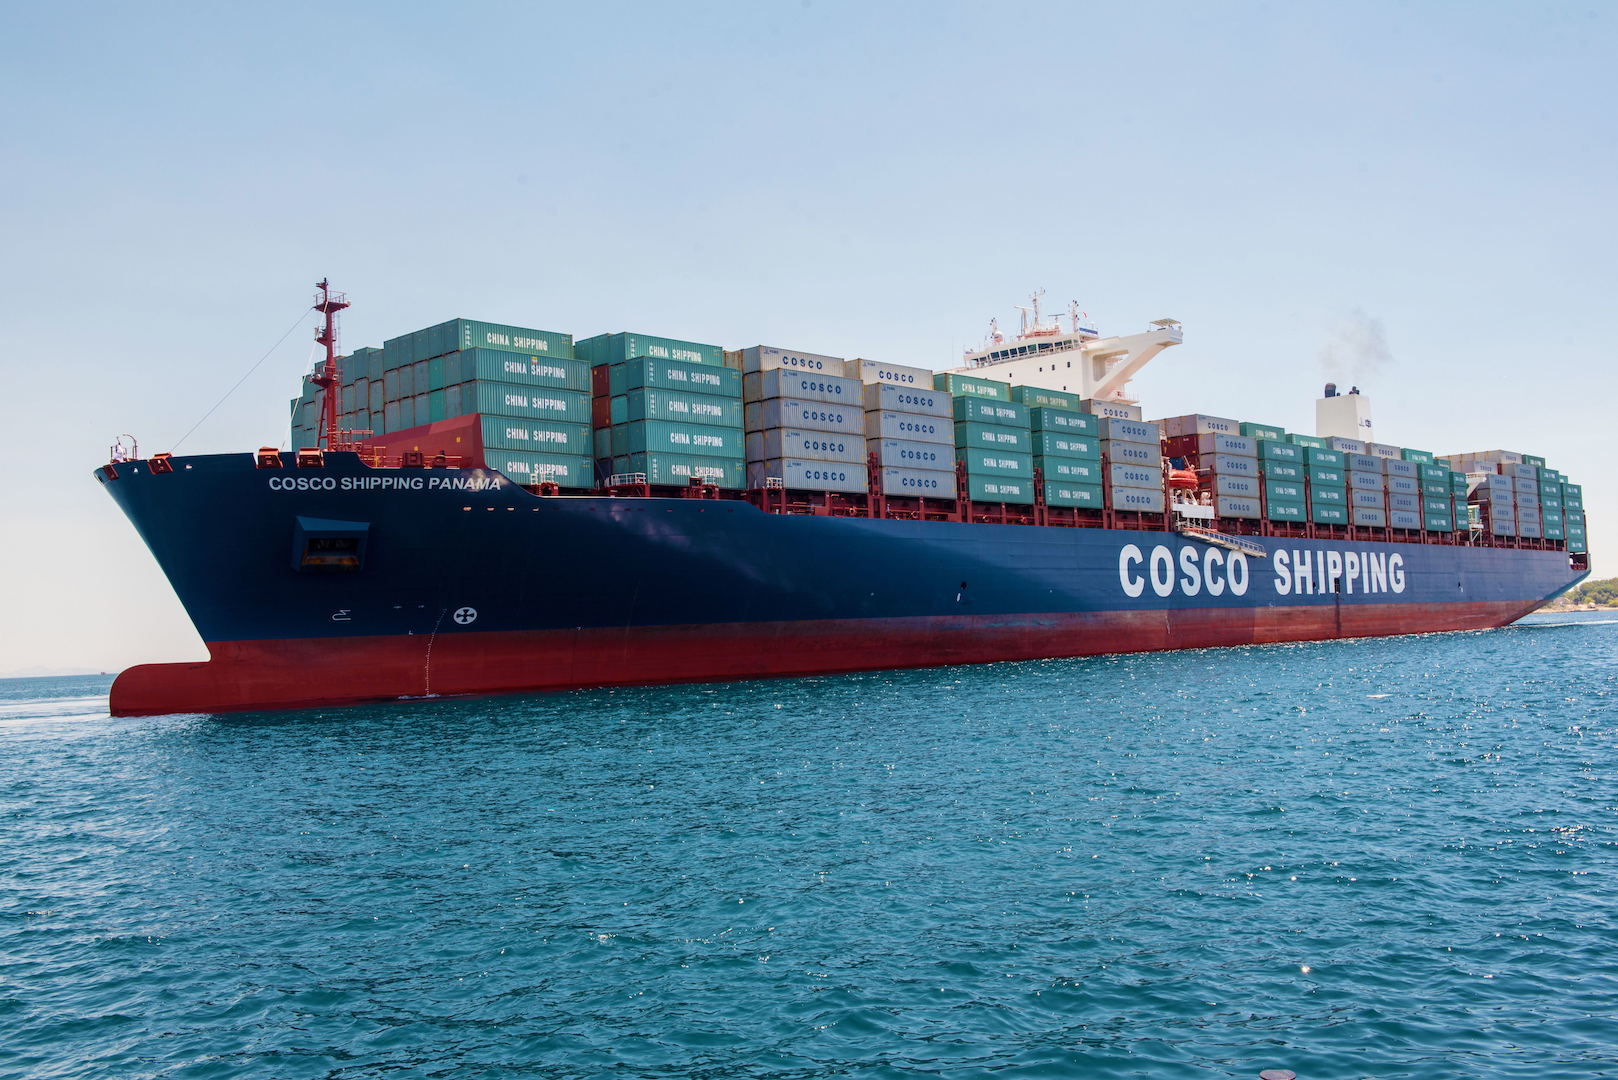 2 First 'Cosco Shipping' vessel